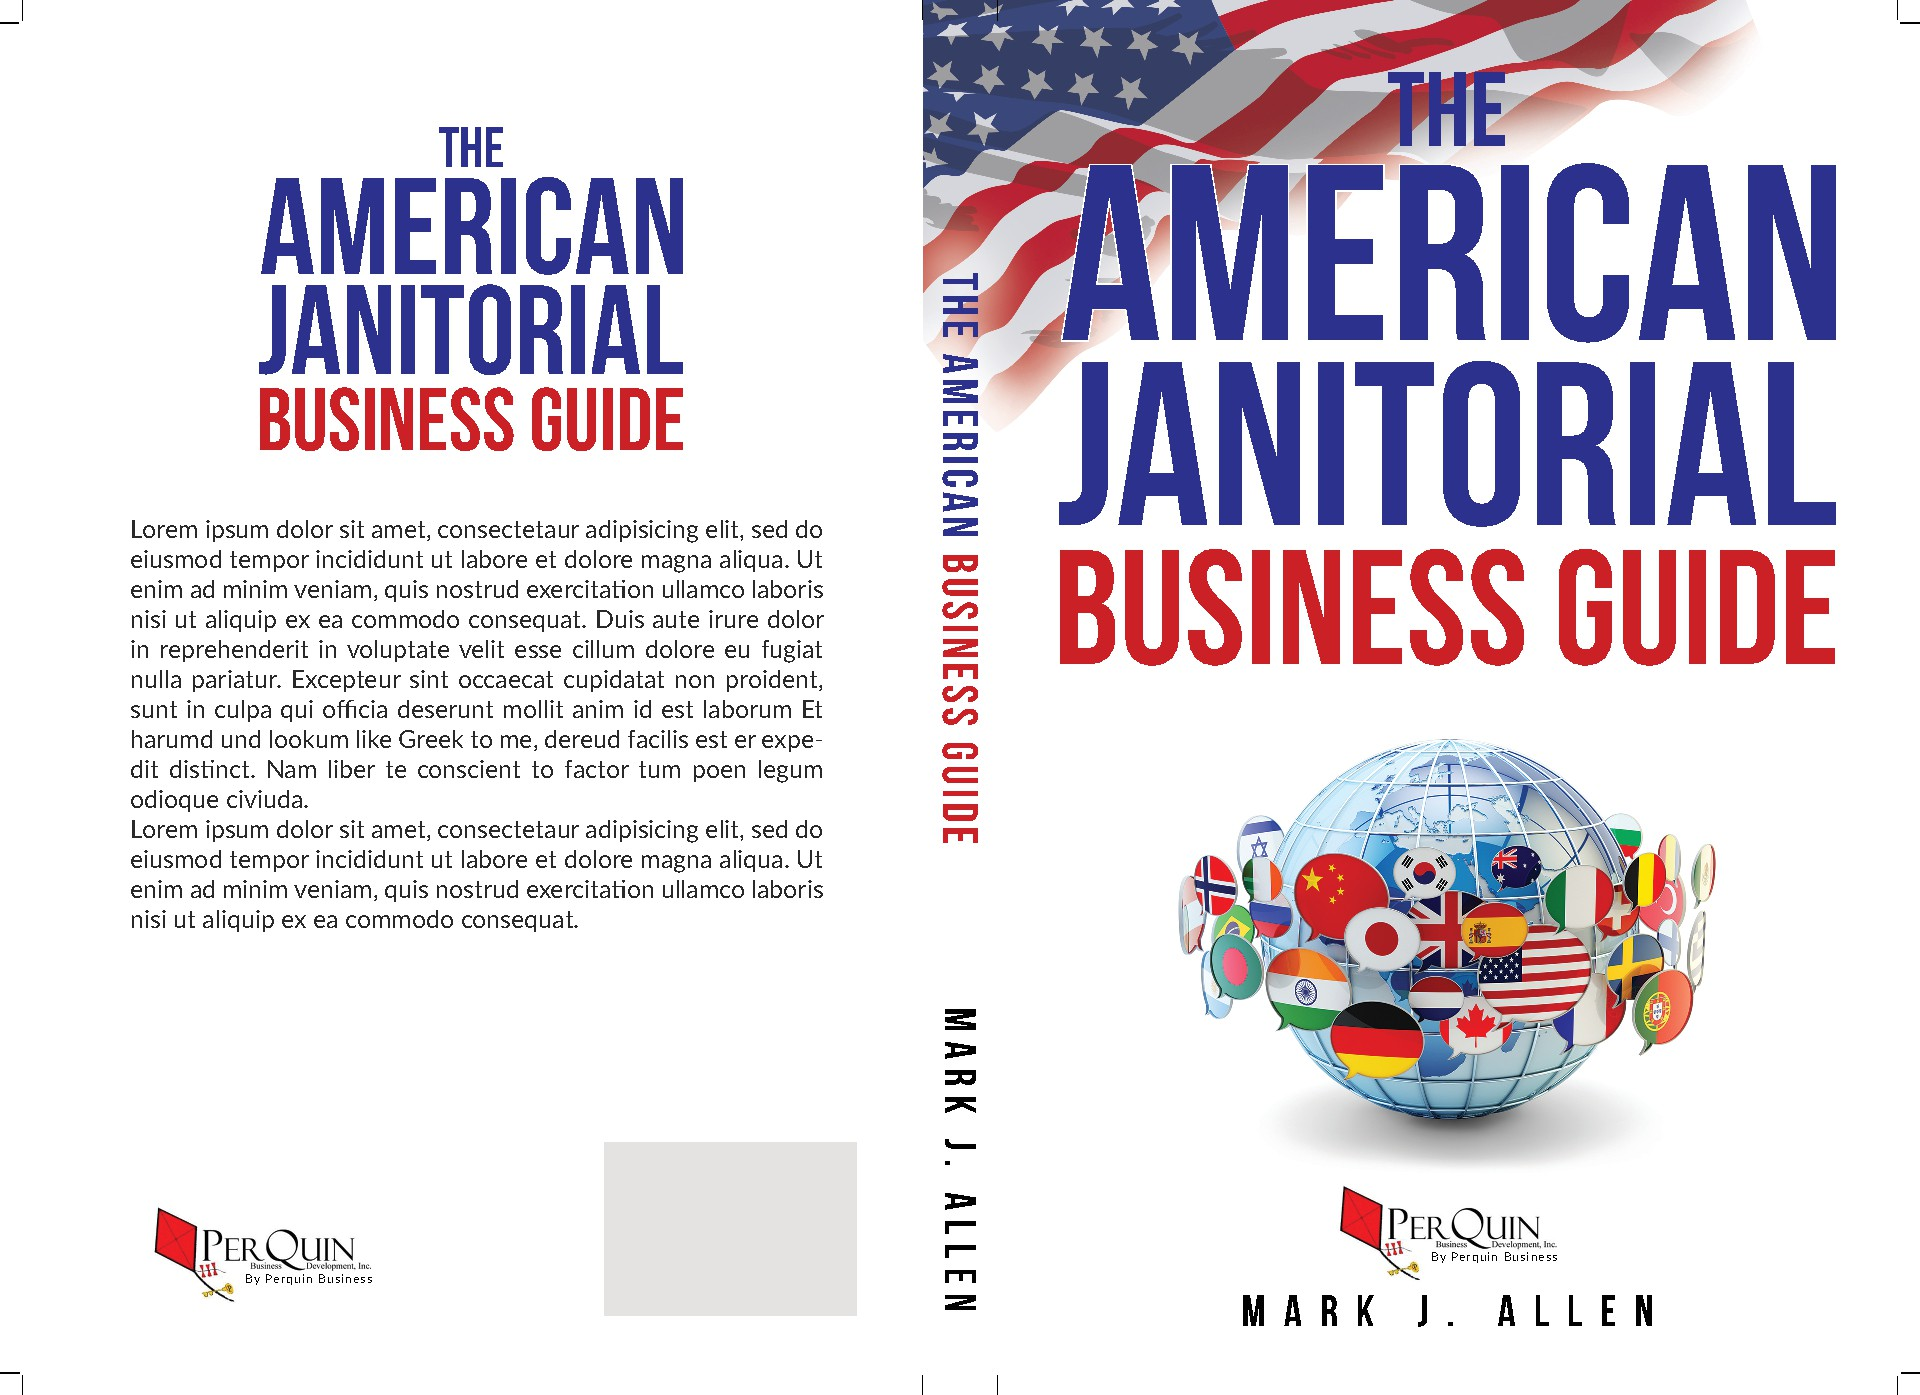 """THE"" American Business Guide...for the international market"